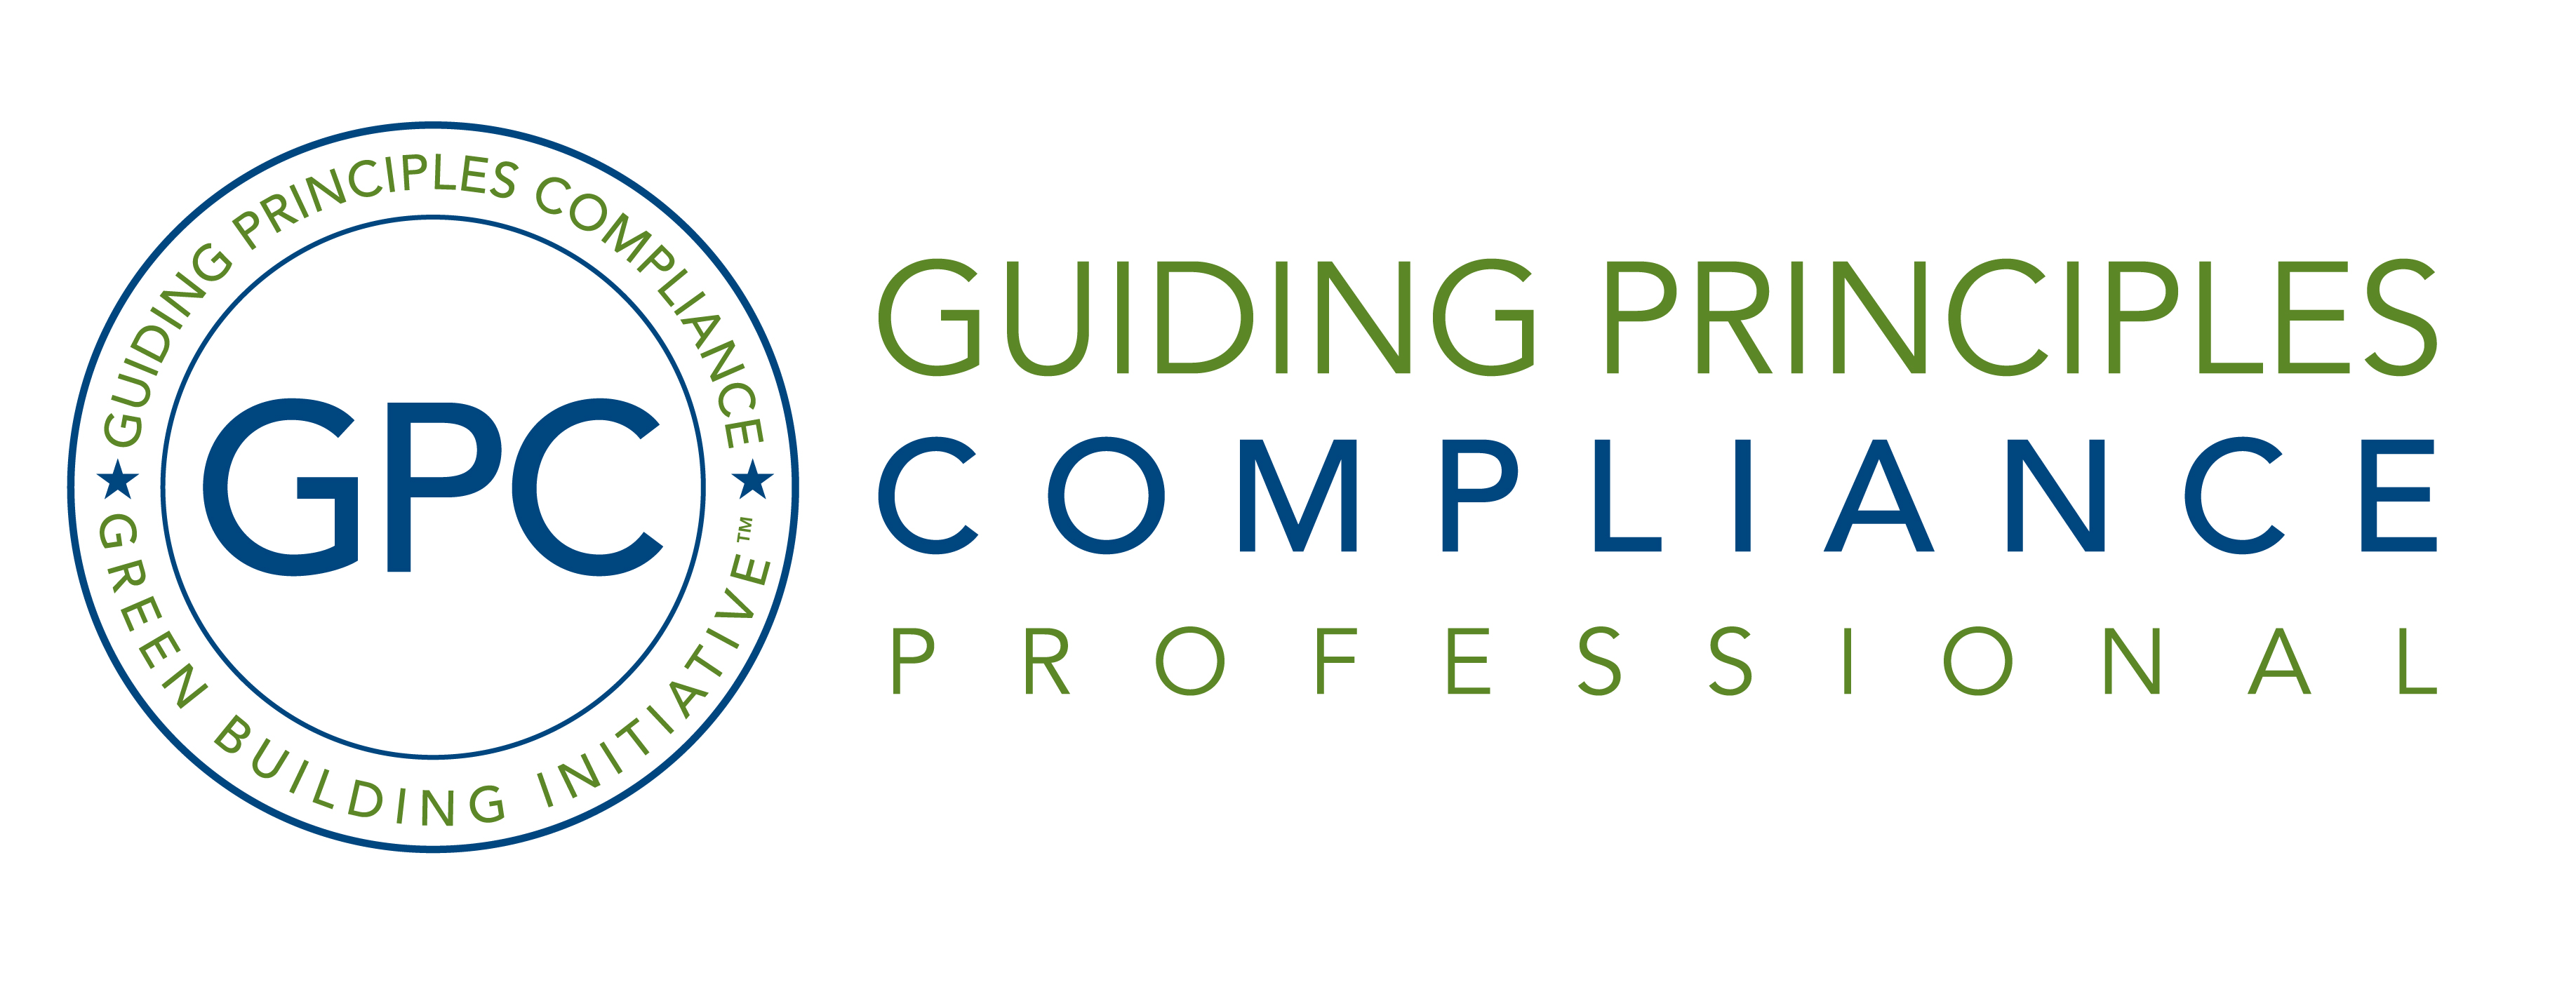 Federal Guiding Principles Compliance Professional